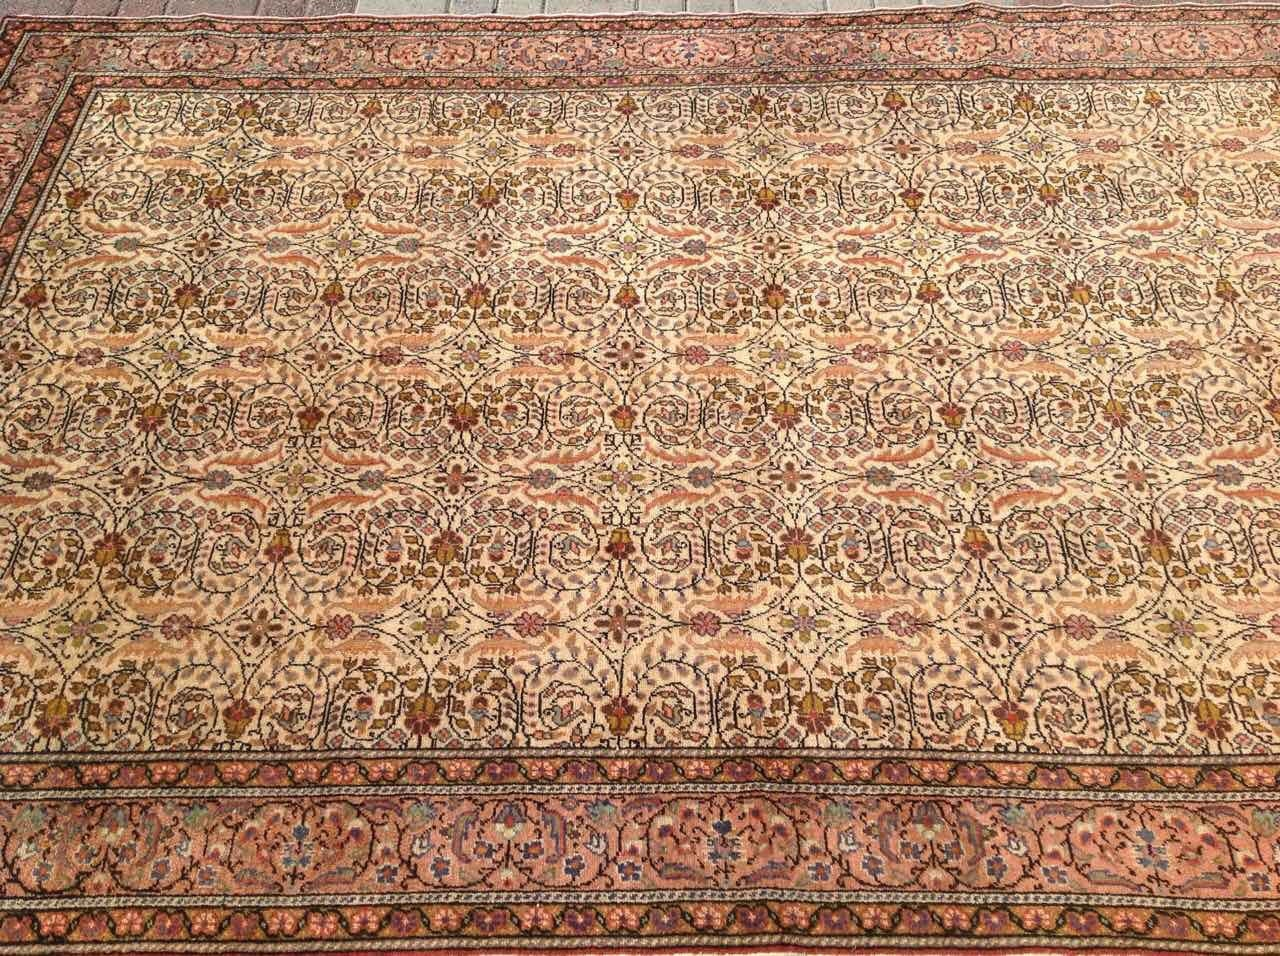 Area Rug 114u0027u0027 X 77u0027u0027 Neutral Color Rug Beige